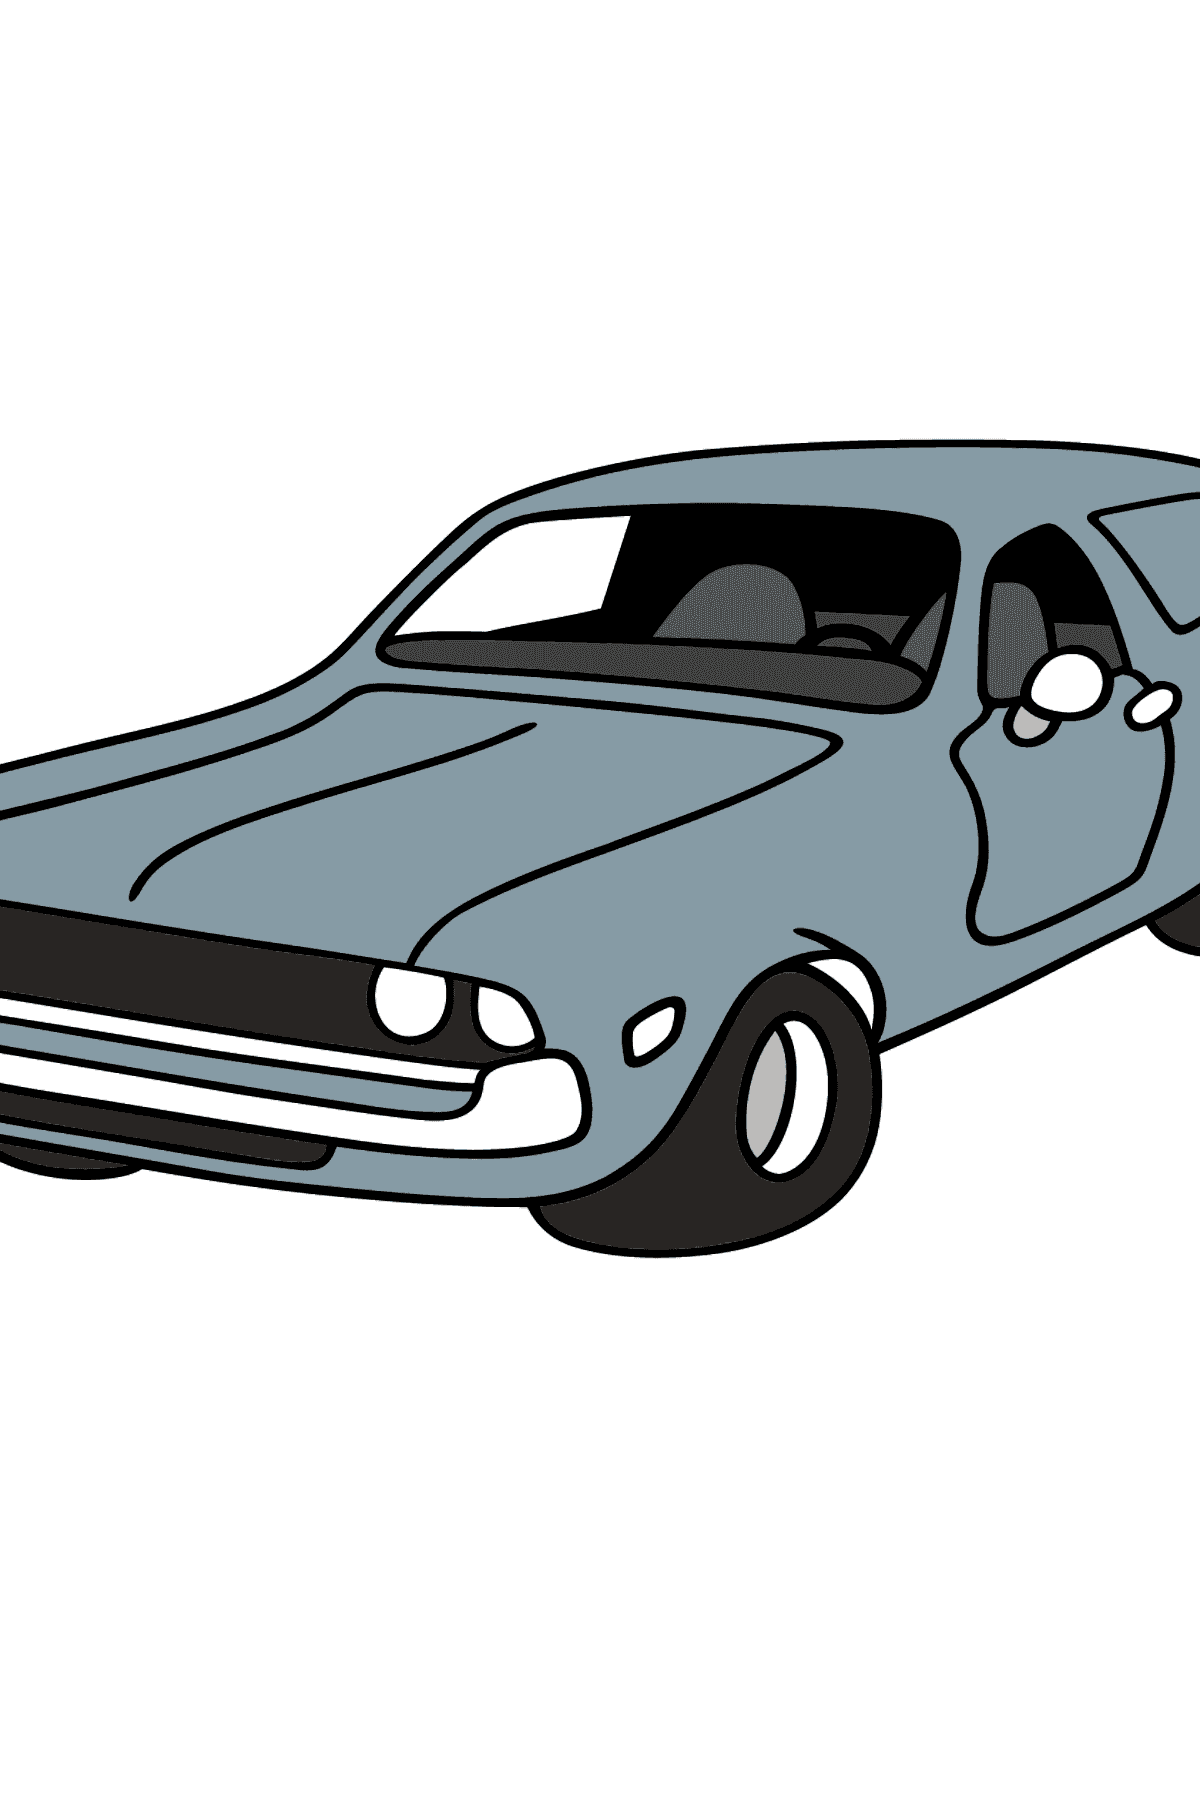 Chevrolet gray car coloring page - Coloring Pages for Kids